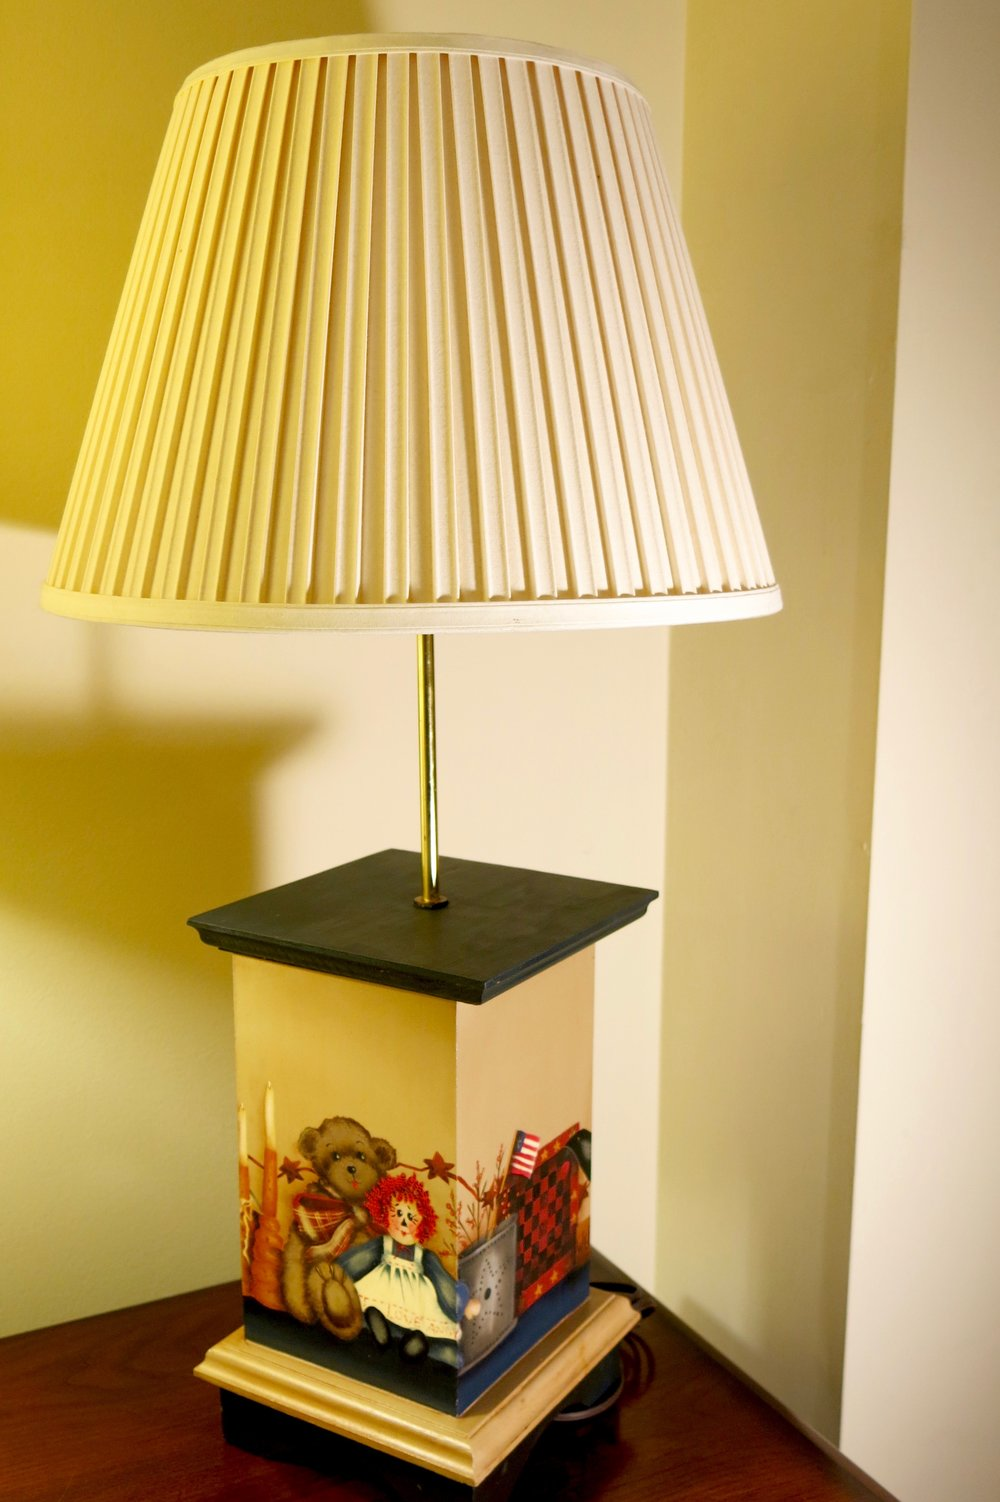 Wooden TaBle lamp with shade